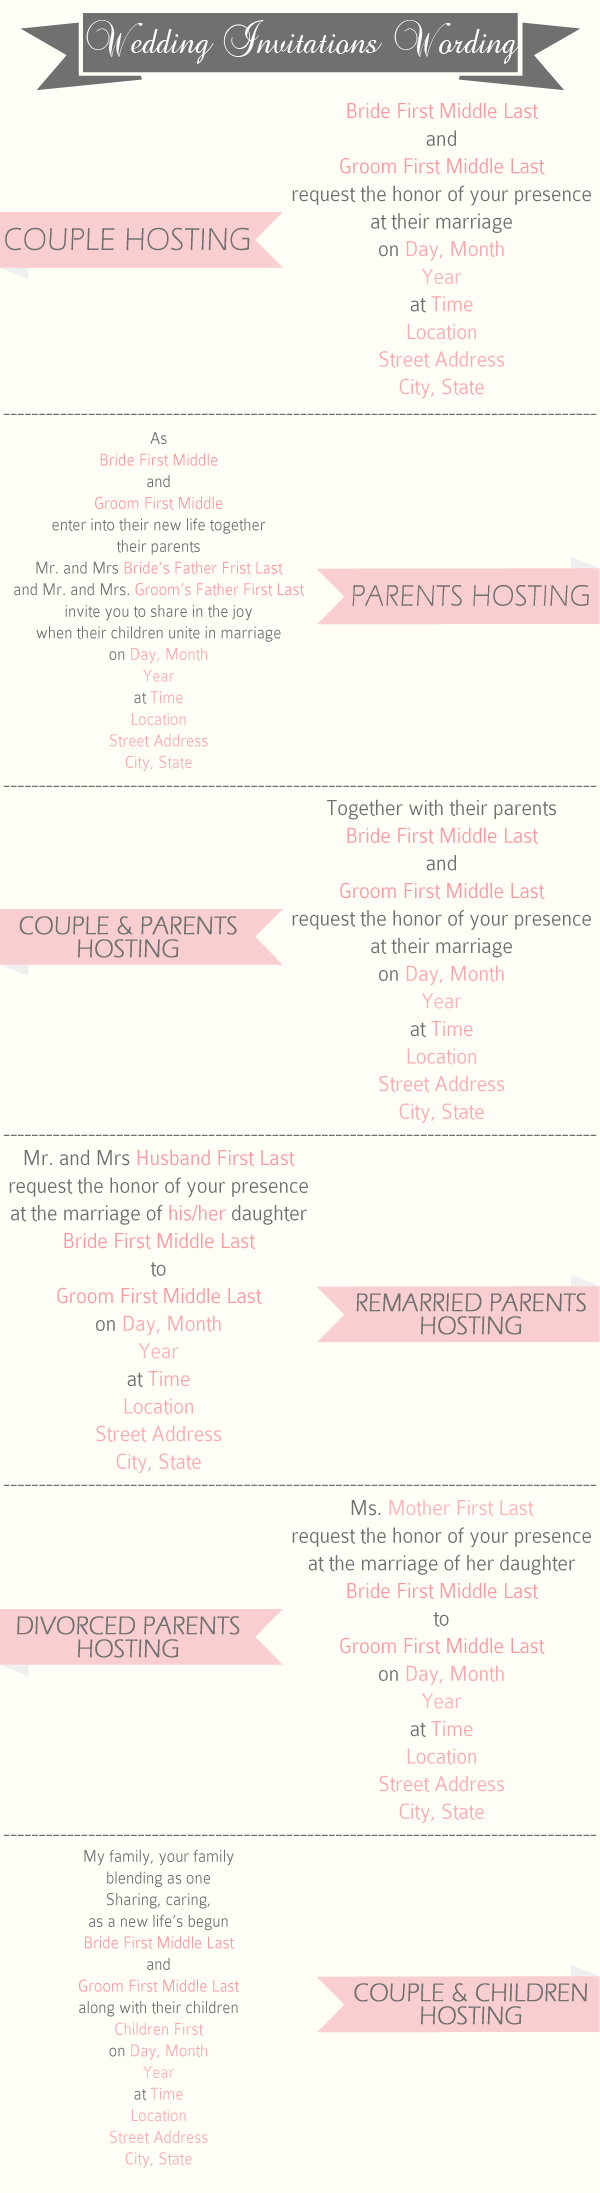 Wedding Invitation Wording Samples to Invite Guests ...